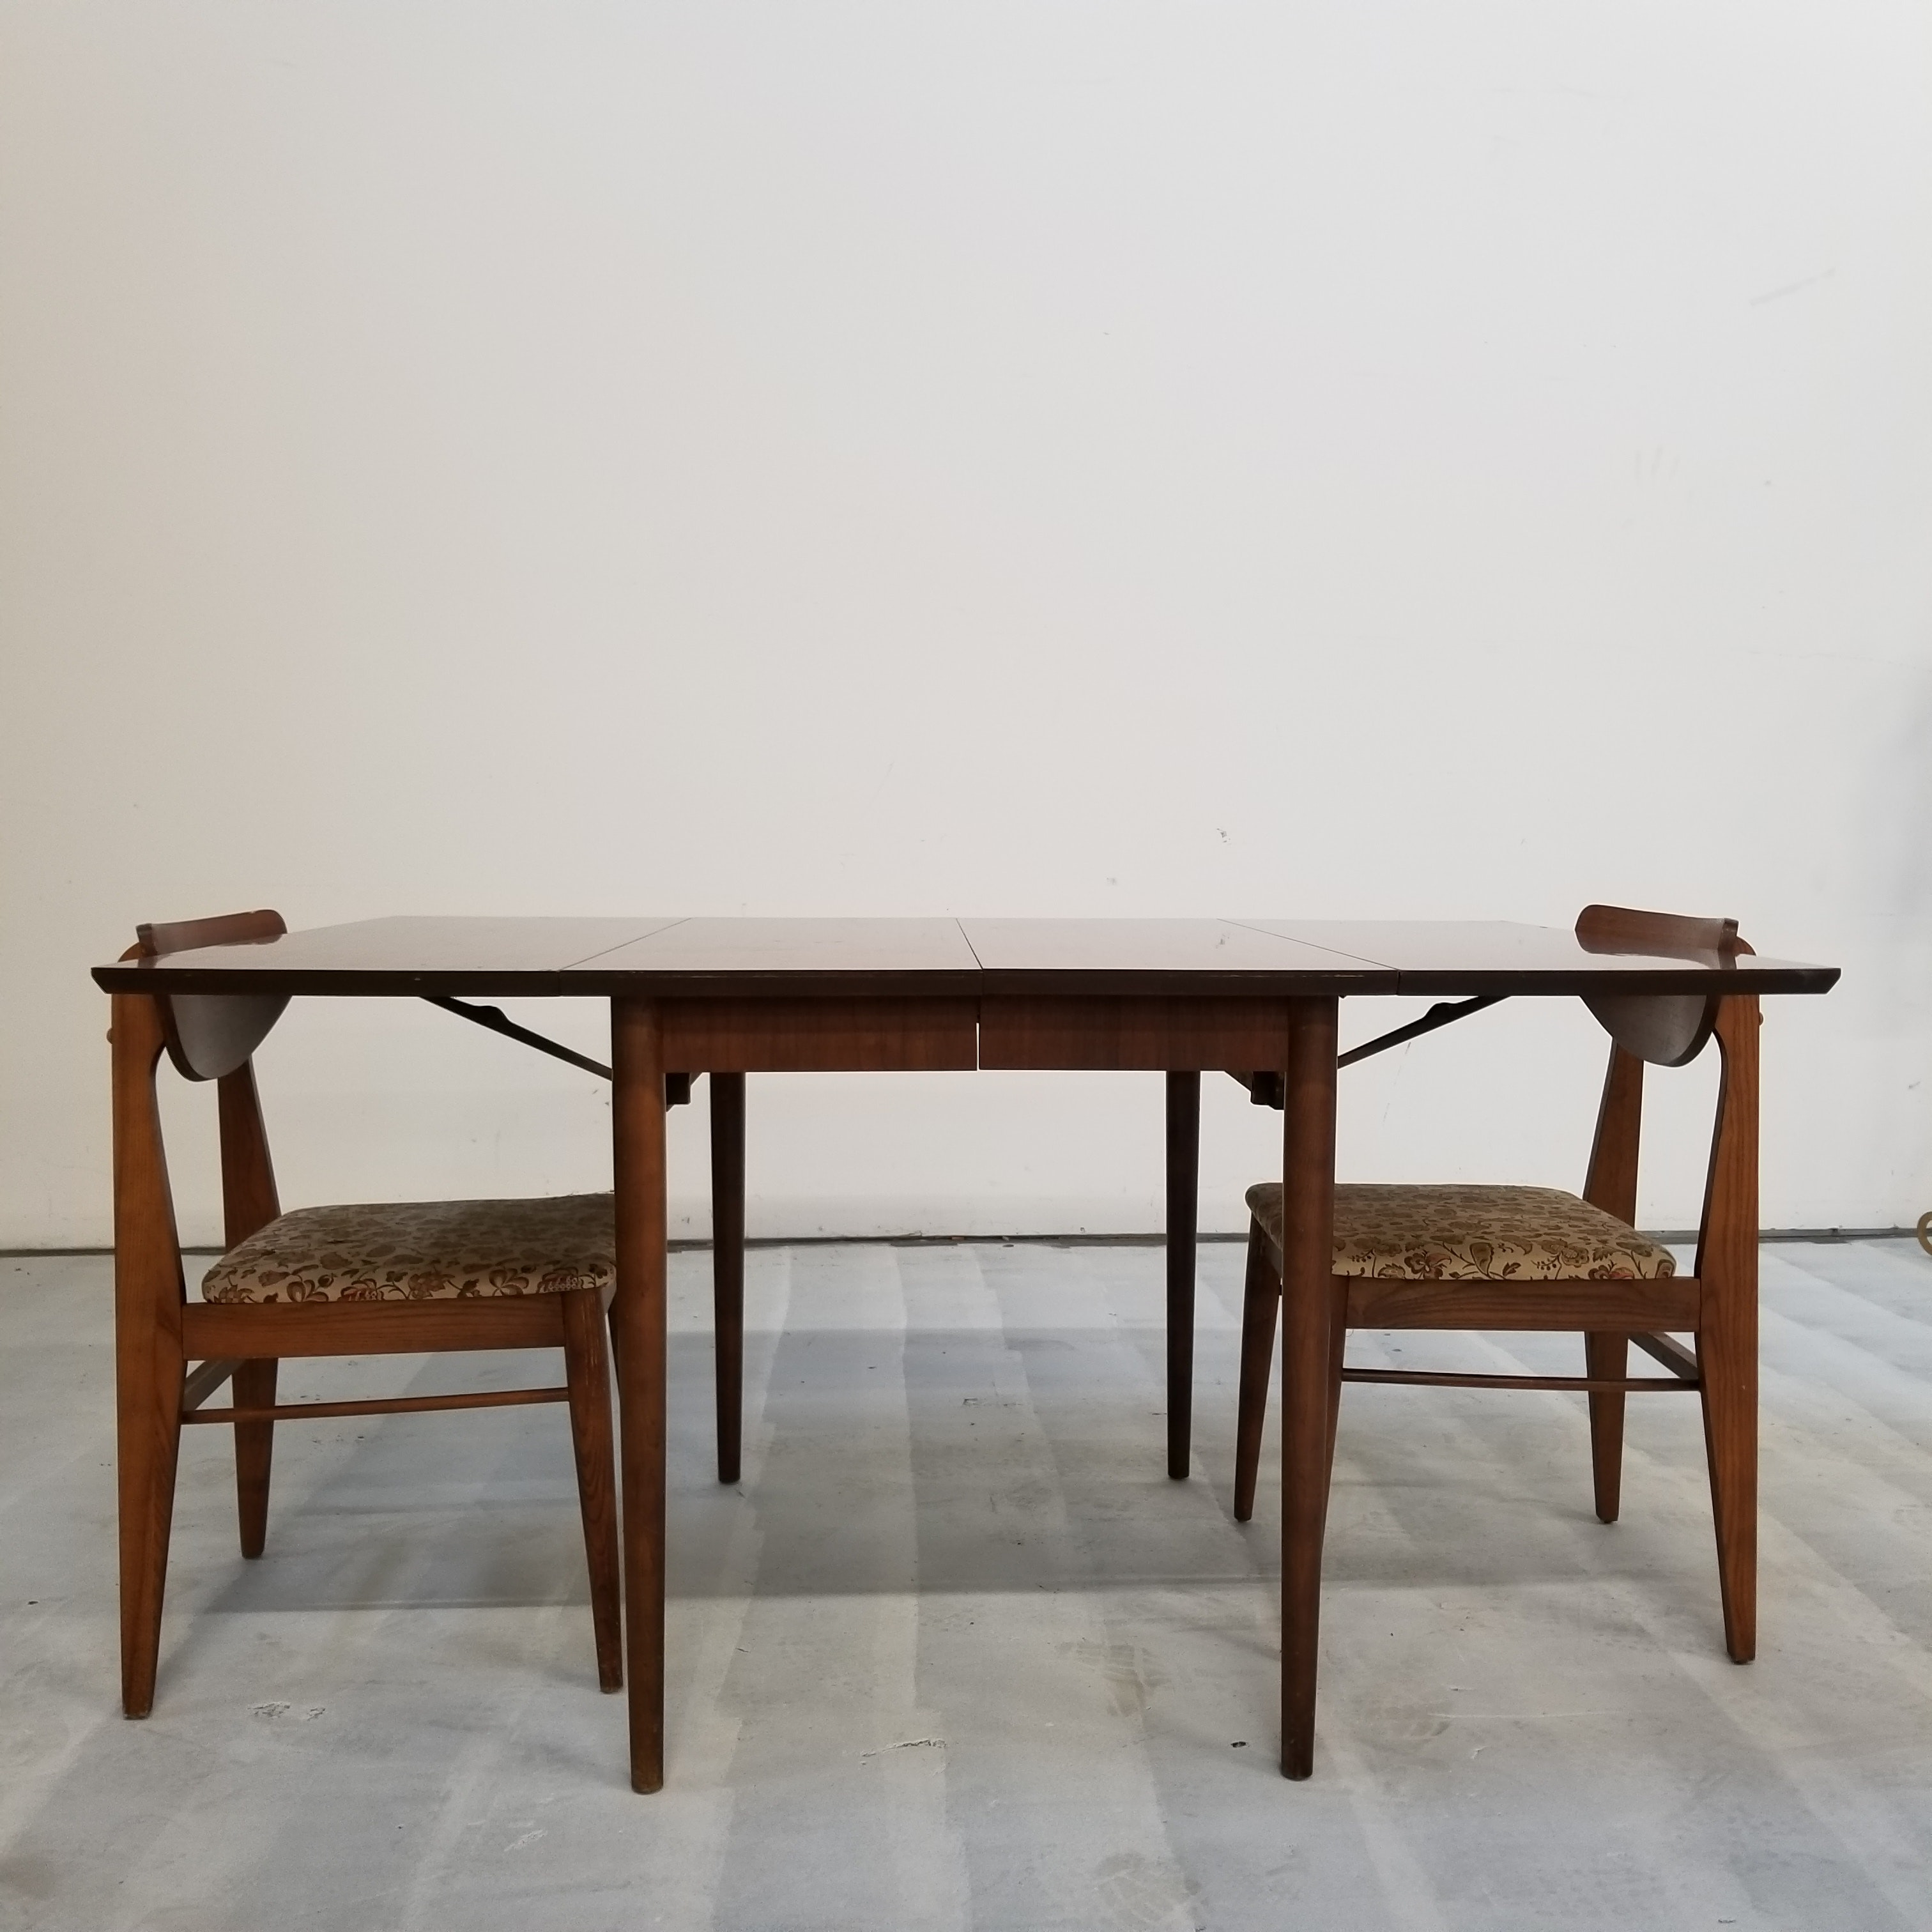 Vintage Mid Century Modern Drop Leaf Table and Chairs